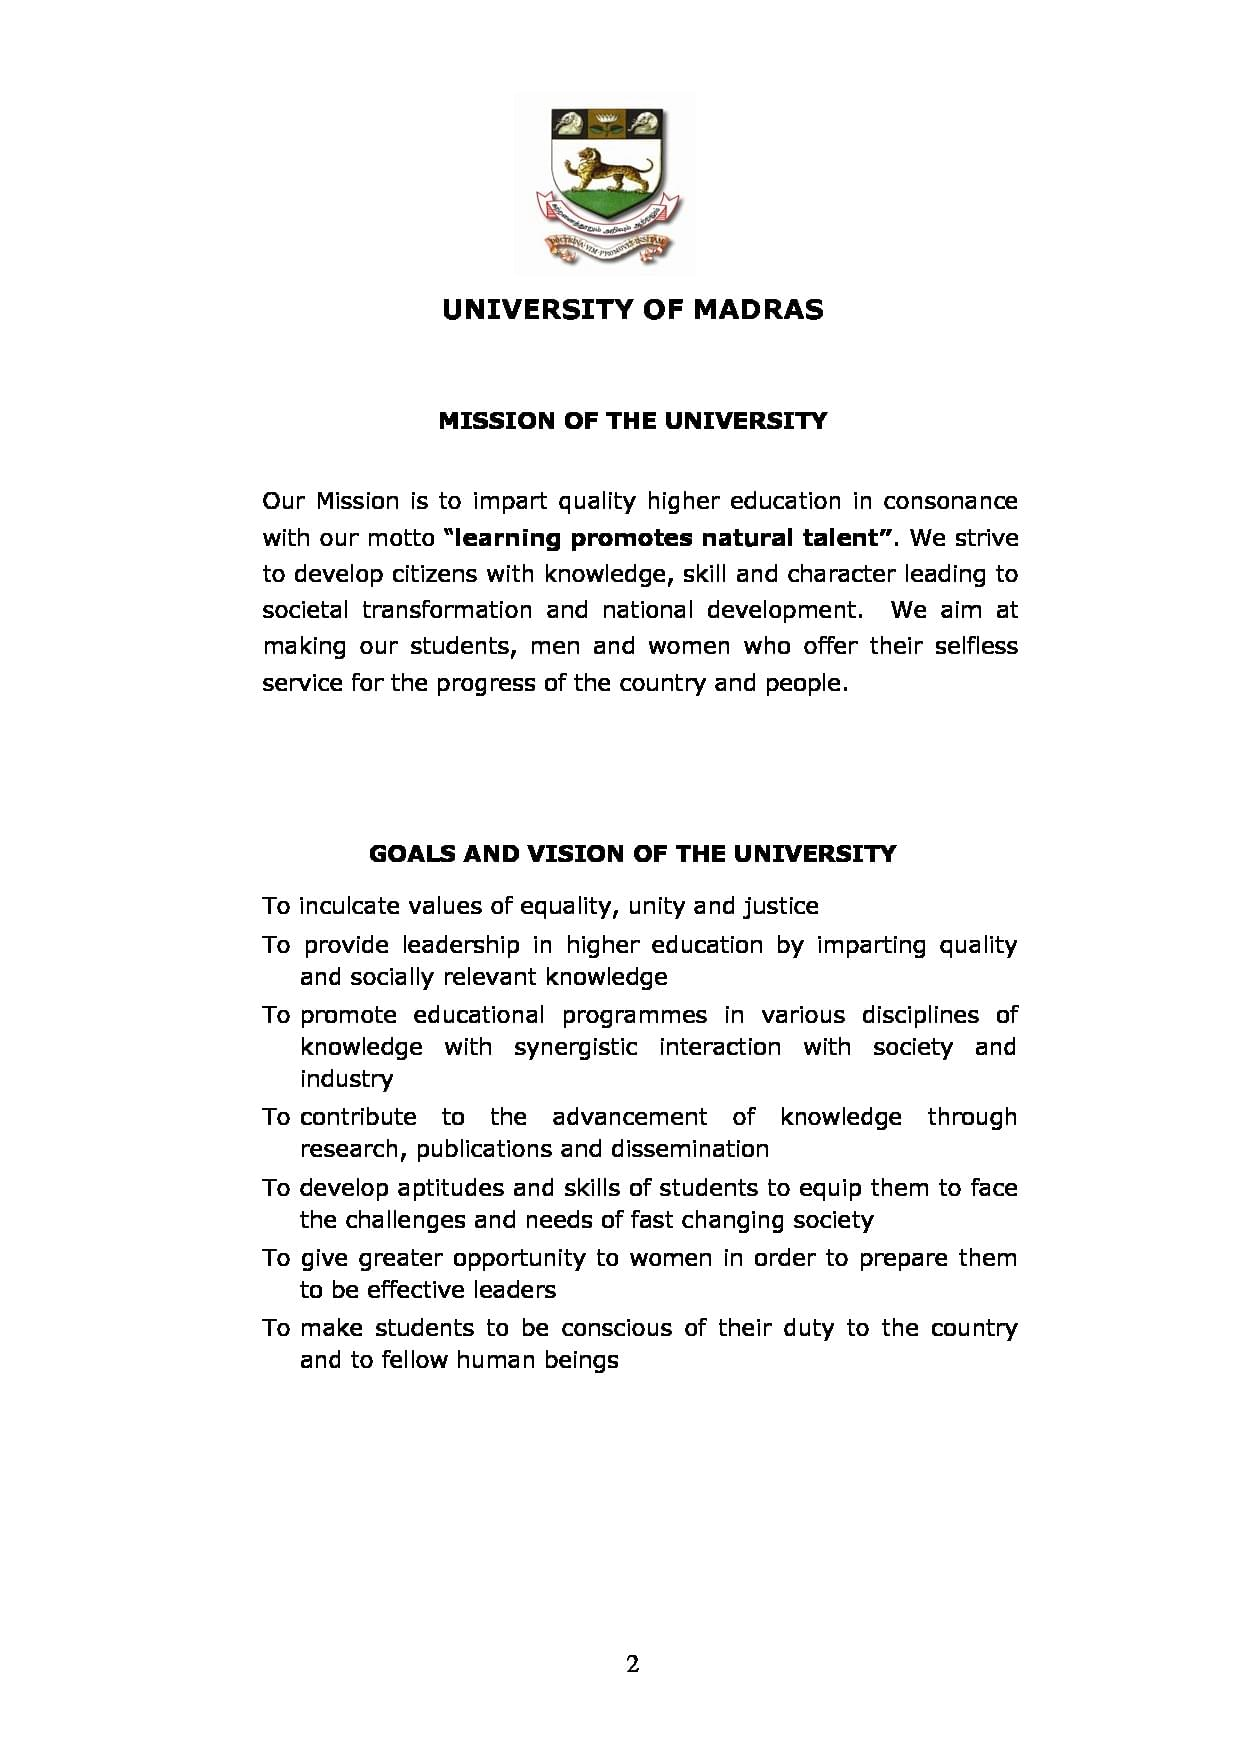 University of Madras, Chennai - Courses, Fee Structure